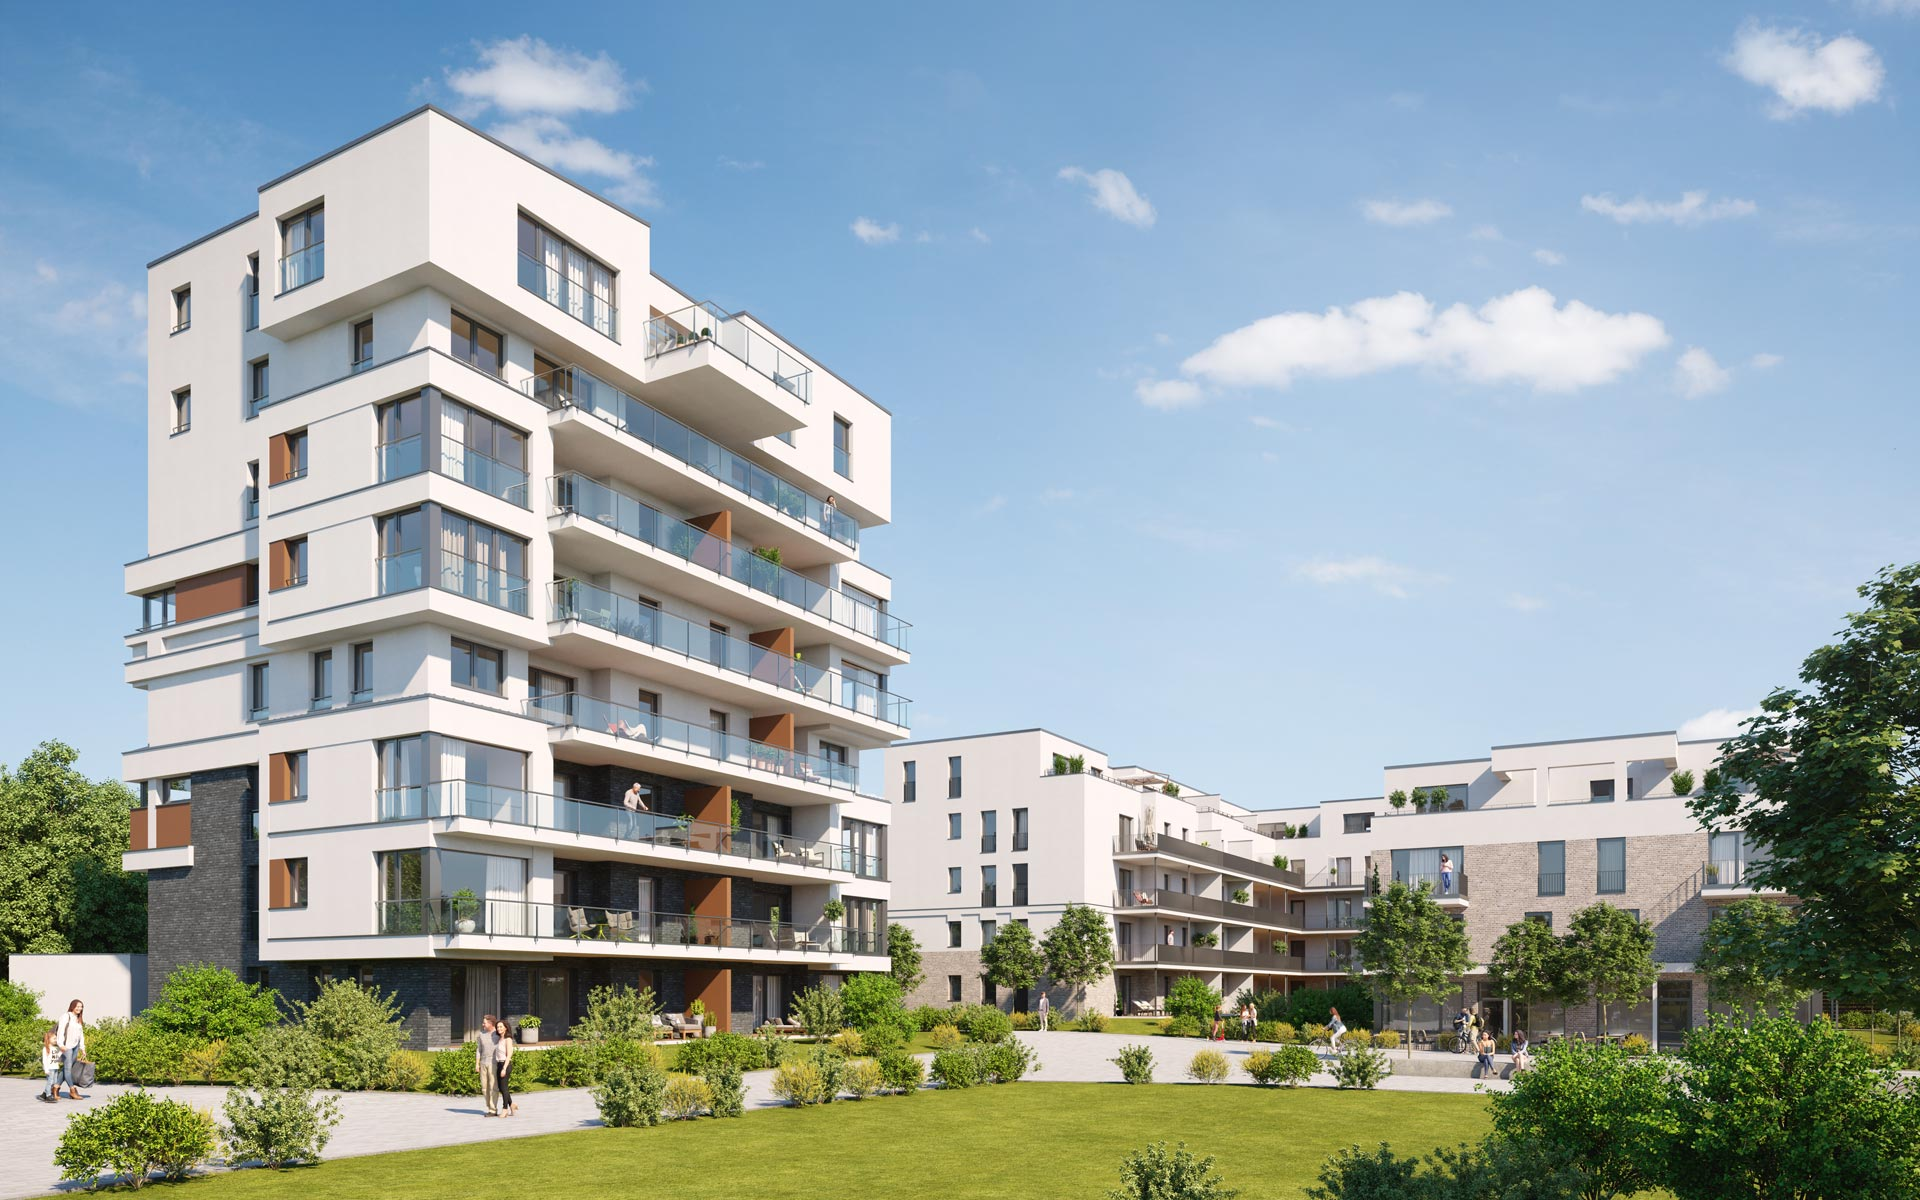 OPUS Marketing / Immobilienmarketing / hugo49 Bayreuth / Visualisierung / Aussenrendering Immobilie